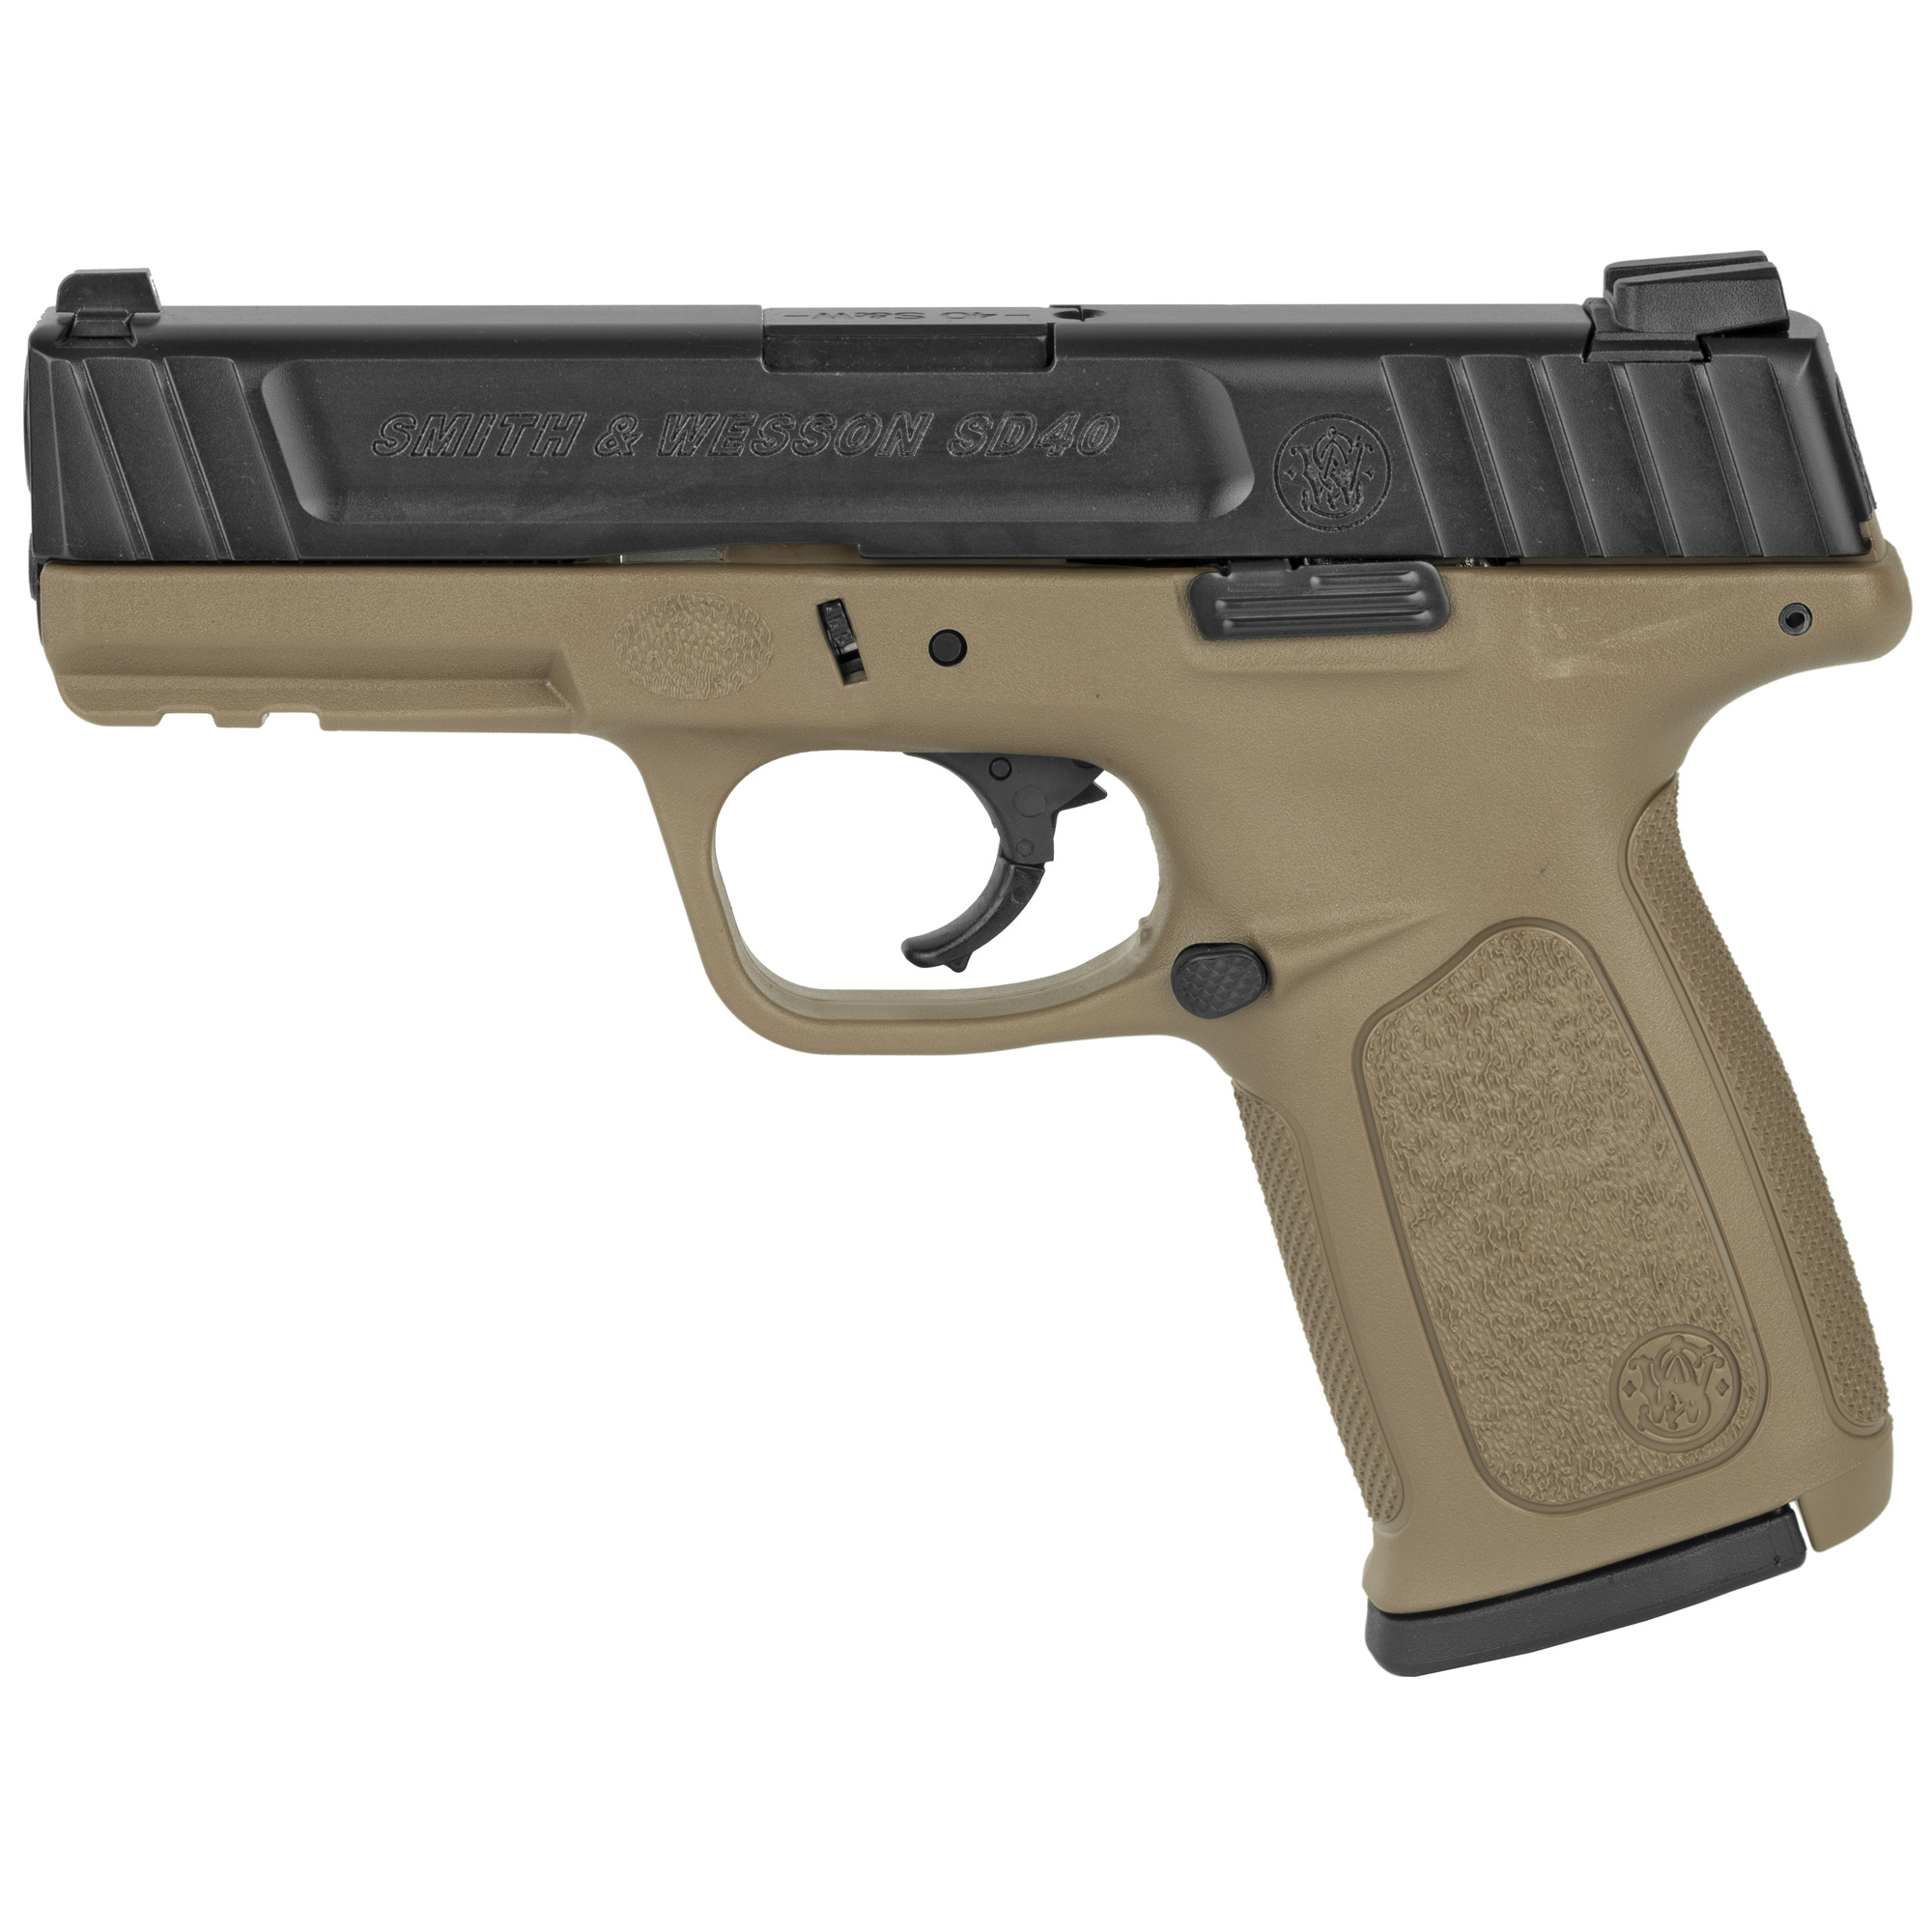 "The Striker-Fired SD40 now comes with an FDE frame! The SD40 is a direct evolution of the Smith & Wesson SD"" and its overall design has an improved self-defense trigger"" and a comfortable"" ergonomic"" FDE textured grip. The SD40 also features an improved stainless steel barrel and slide"" which were not standard on the original SD. Includes two 14-round magazines."